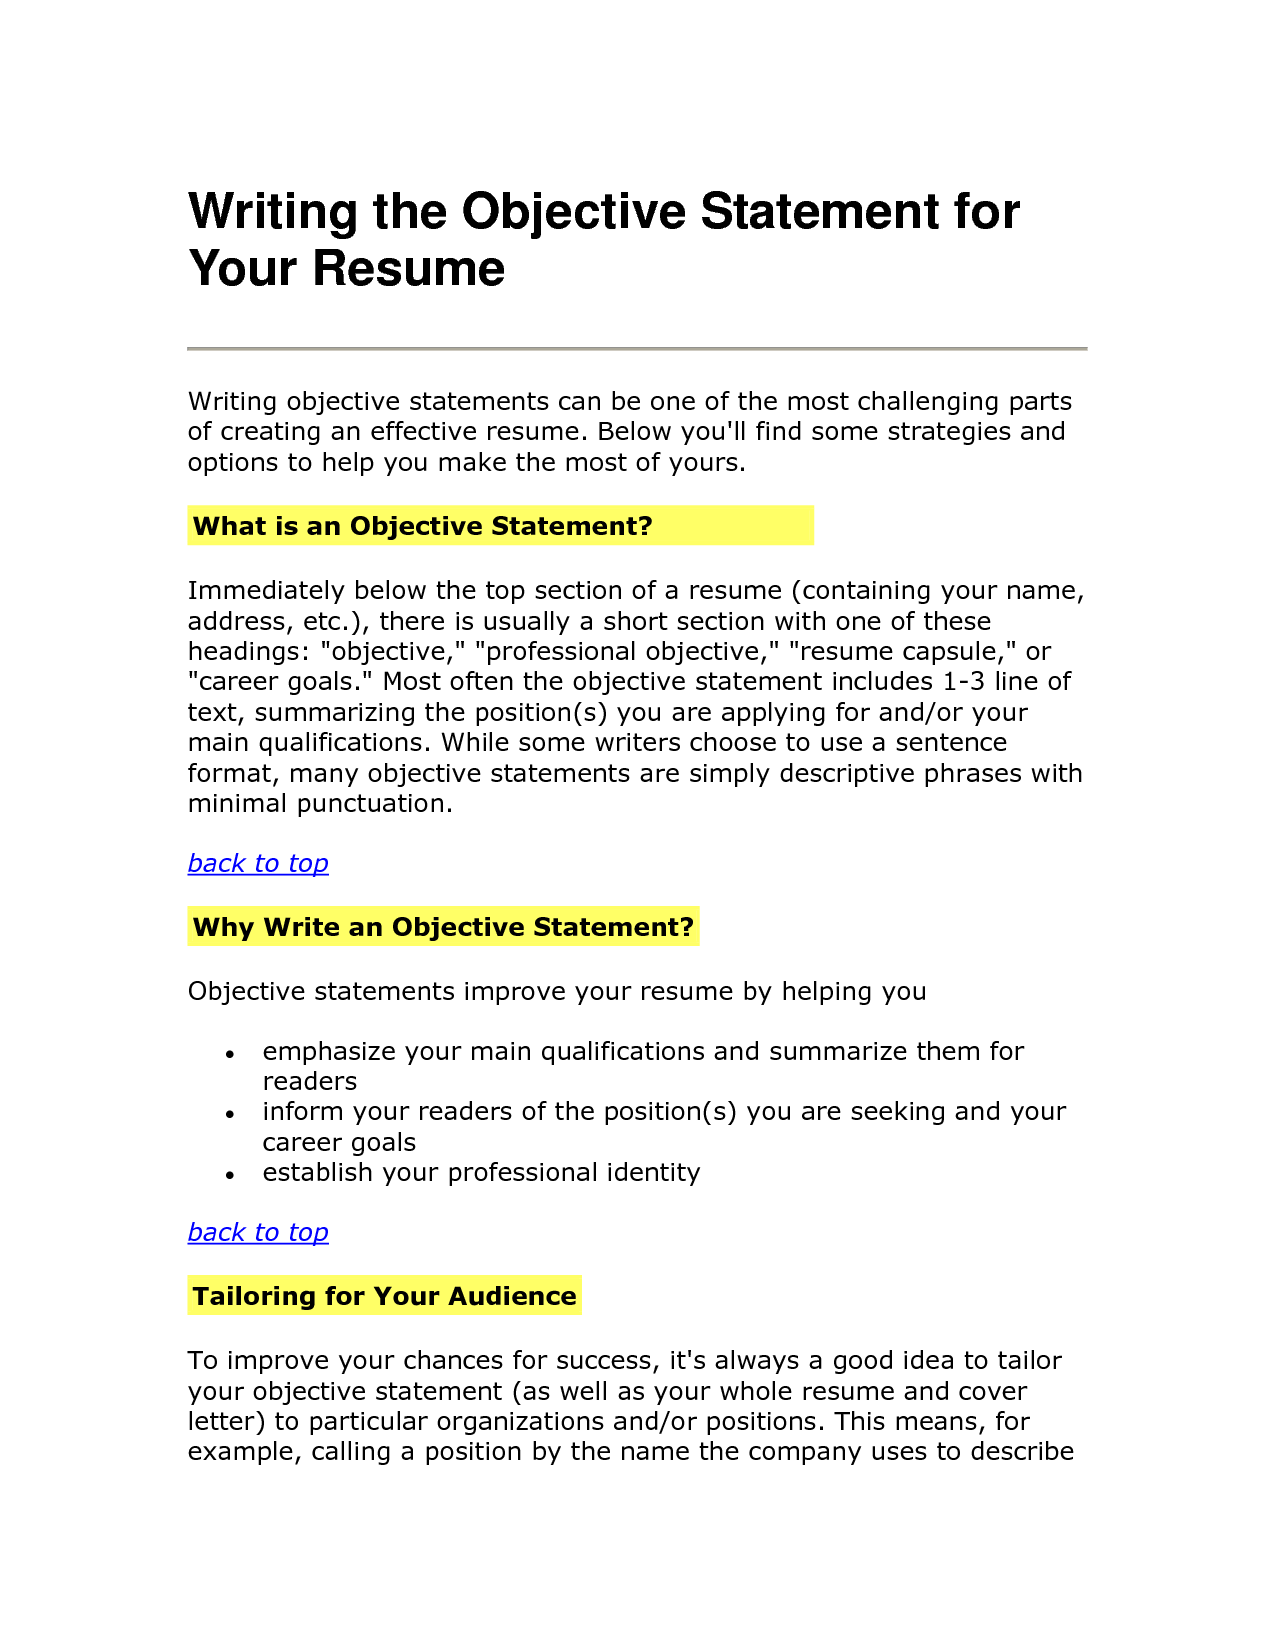 Teacher Resume Objective Statement Writing The Objective Statement For Your Resume